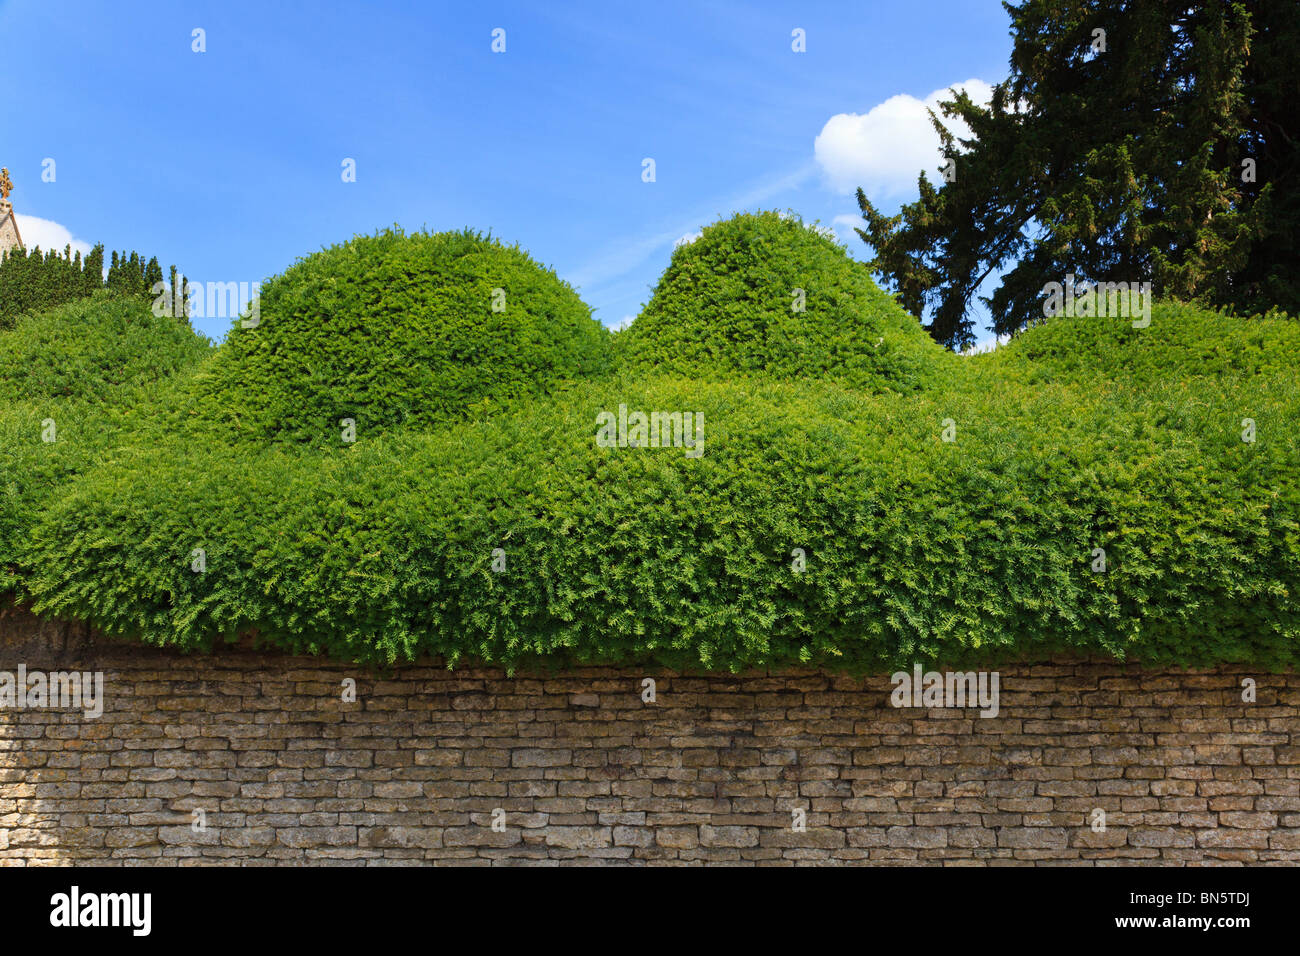 Cloud shaped yew hedge in the desirable village of Turvey, Bedfordshire, UK - Stock Image